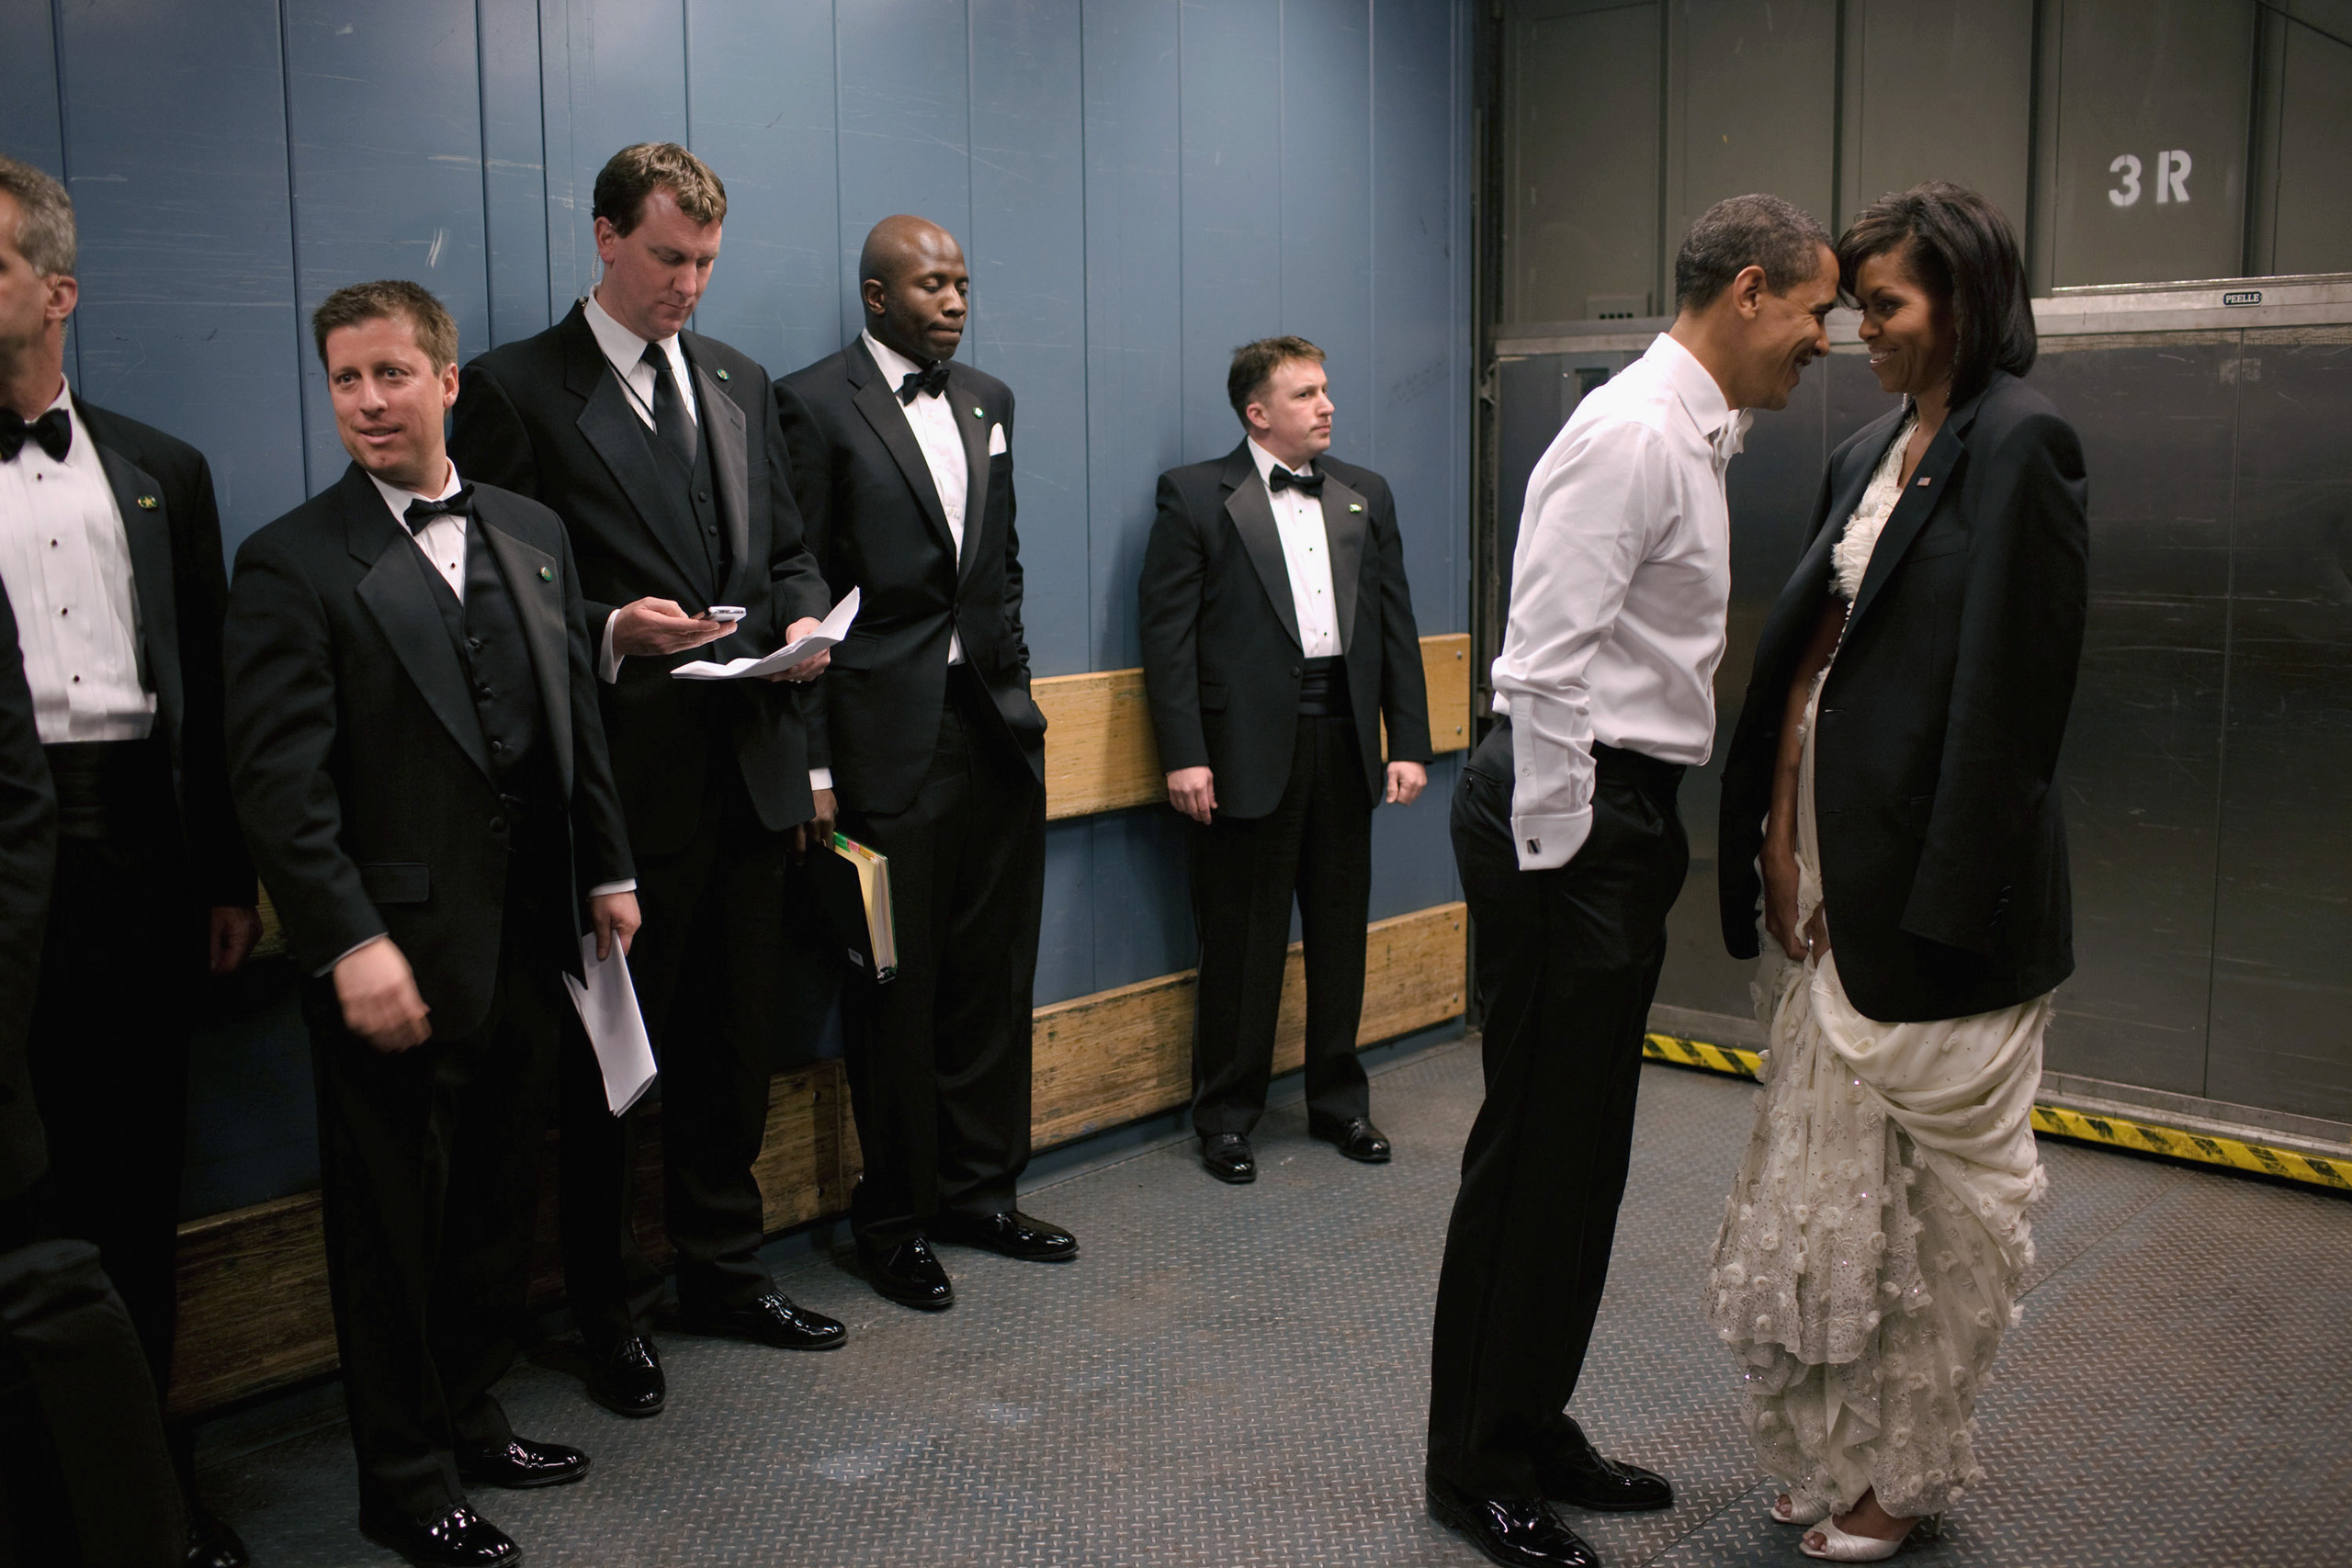 """""""We were on a freight elevator headed to one of the Inaugural Balls. It was quite chilly, so the President removed his tuxedo jacket and put it over the shoulders of his wife. Then they had a semi-private moment as staff member and Secret Service agents tried not to look,""""Jan. 20, 2009."""